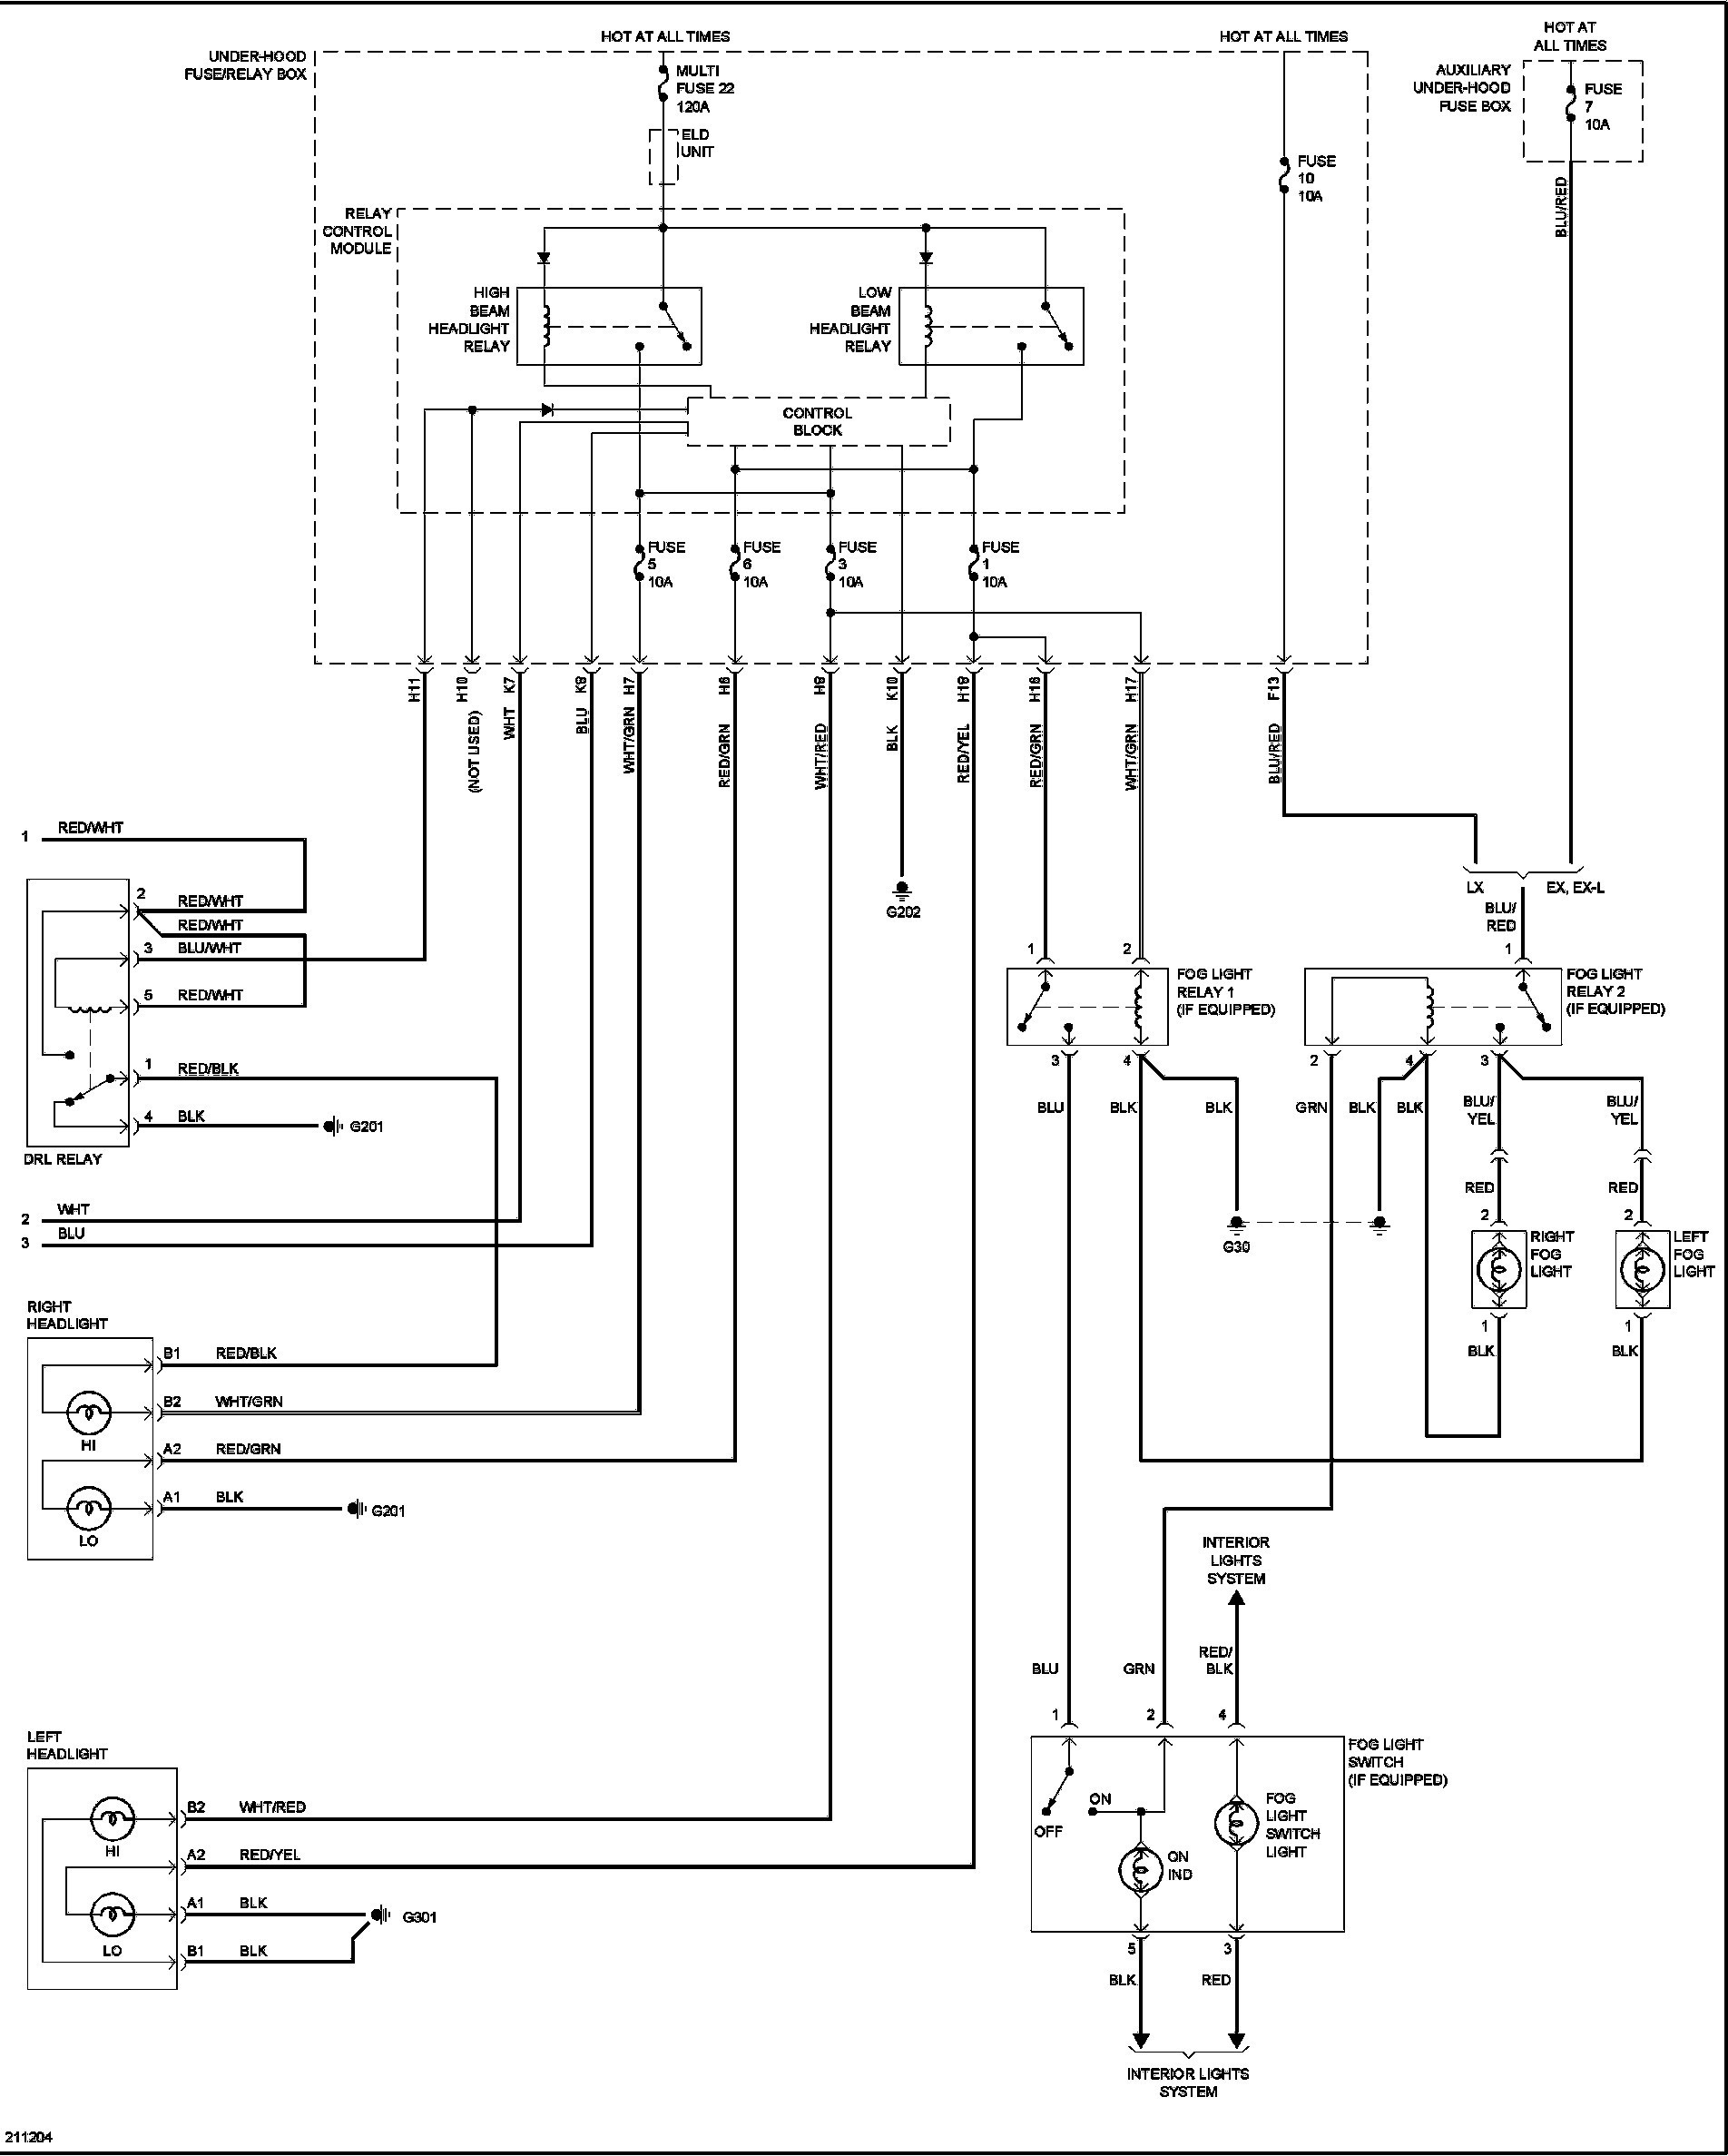 wiring diagram for honda odyssey just wiring data rh ag skiphire co uk 2011  honda civic ac wiring diagram